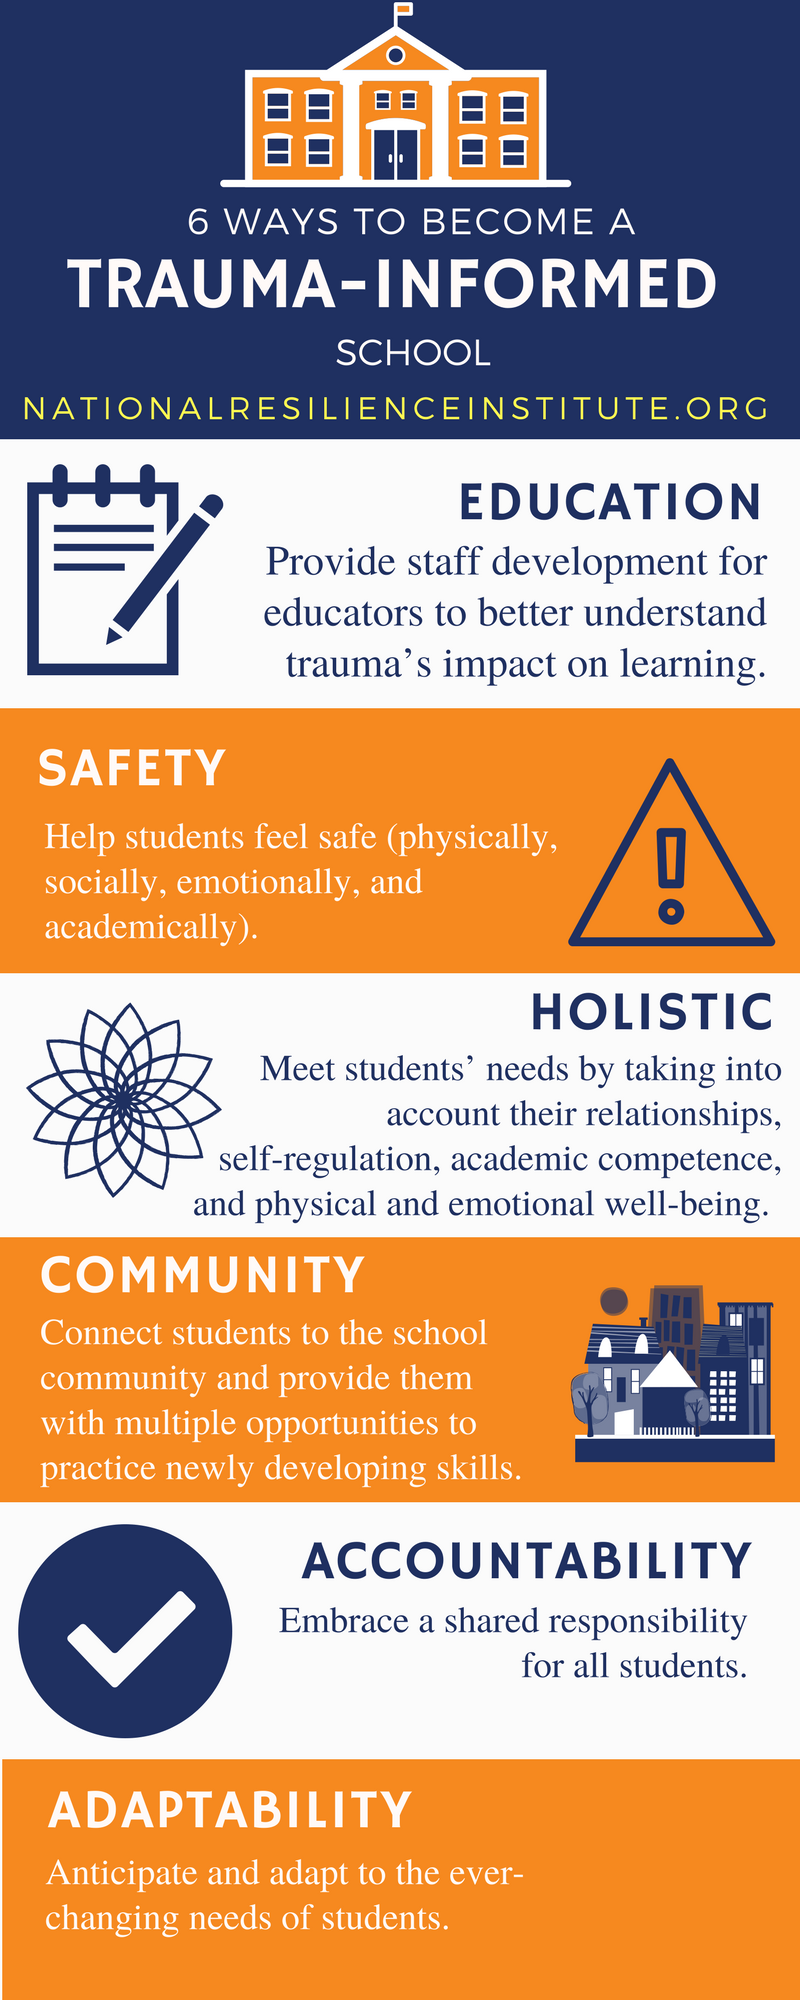 6 ways to become trauma informed school